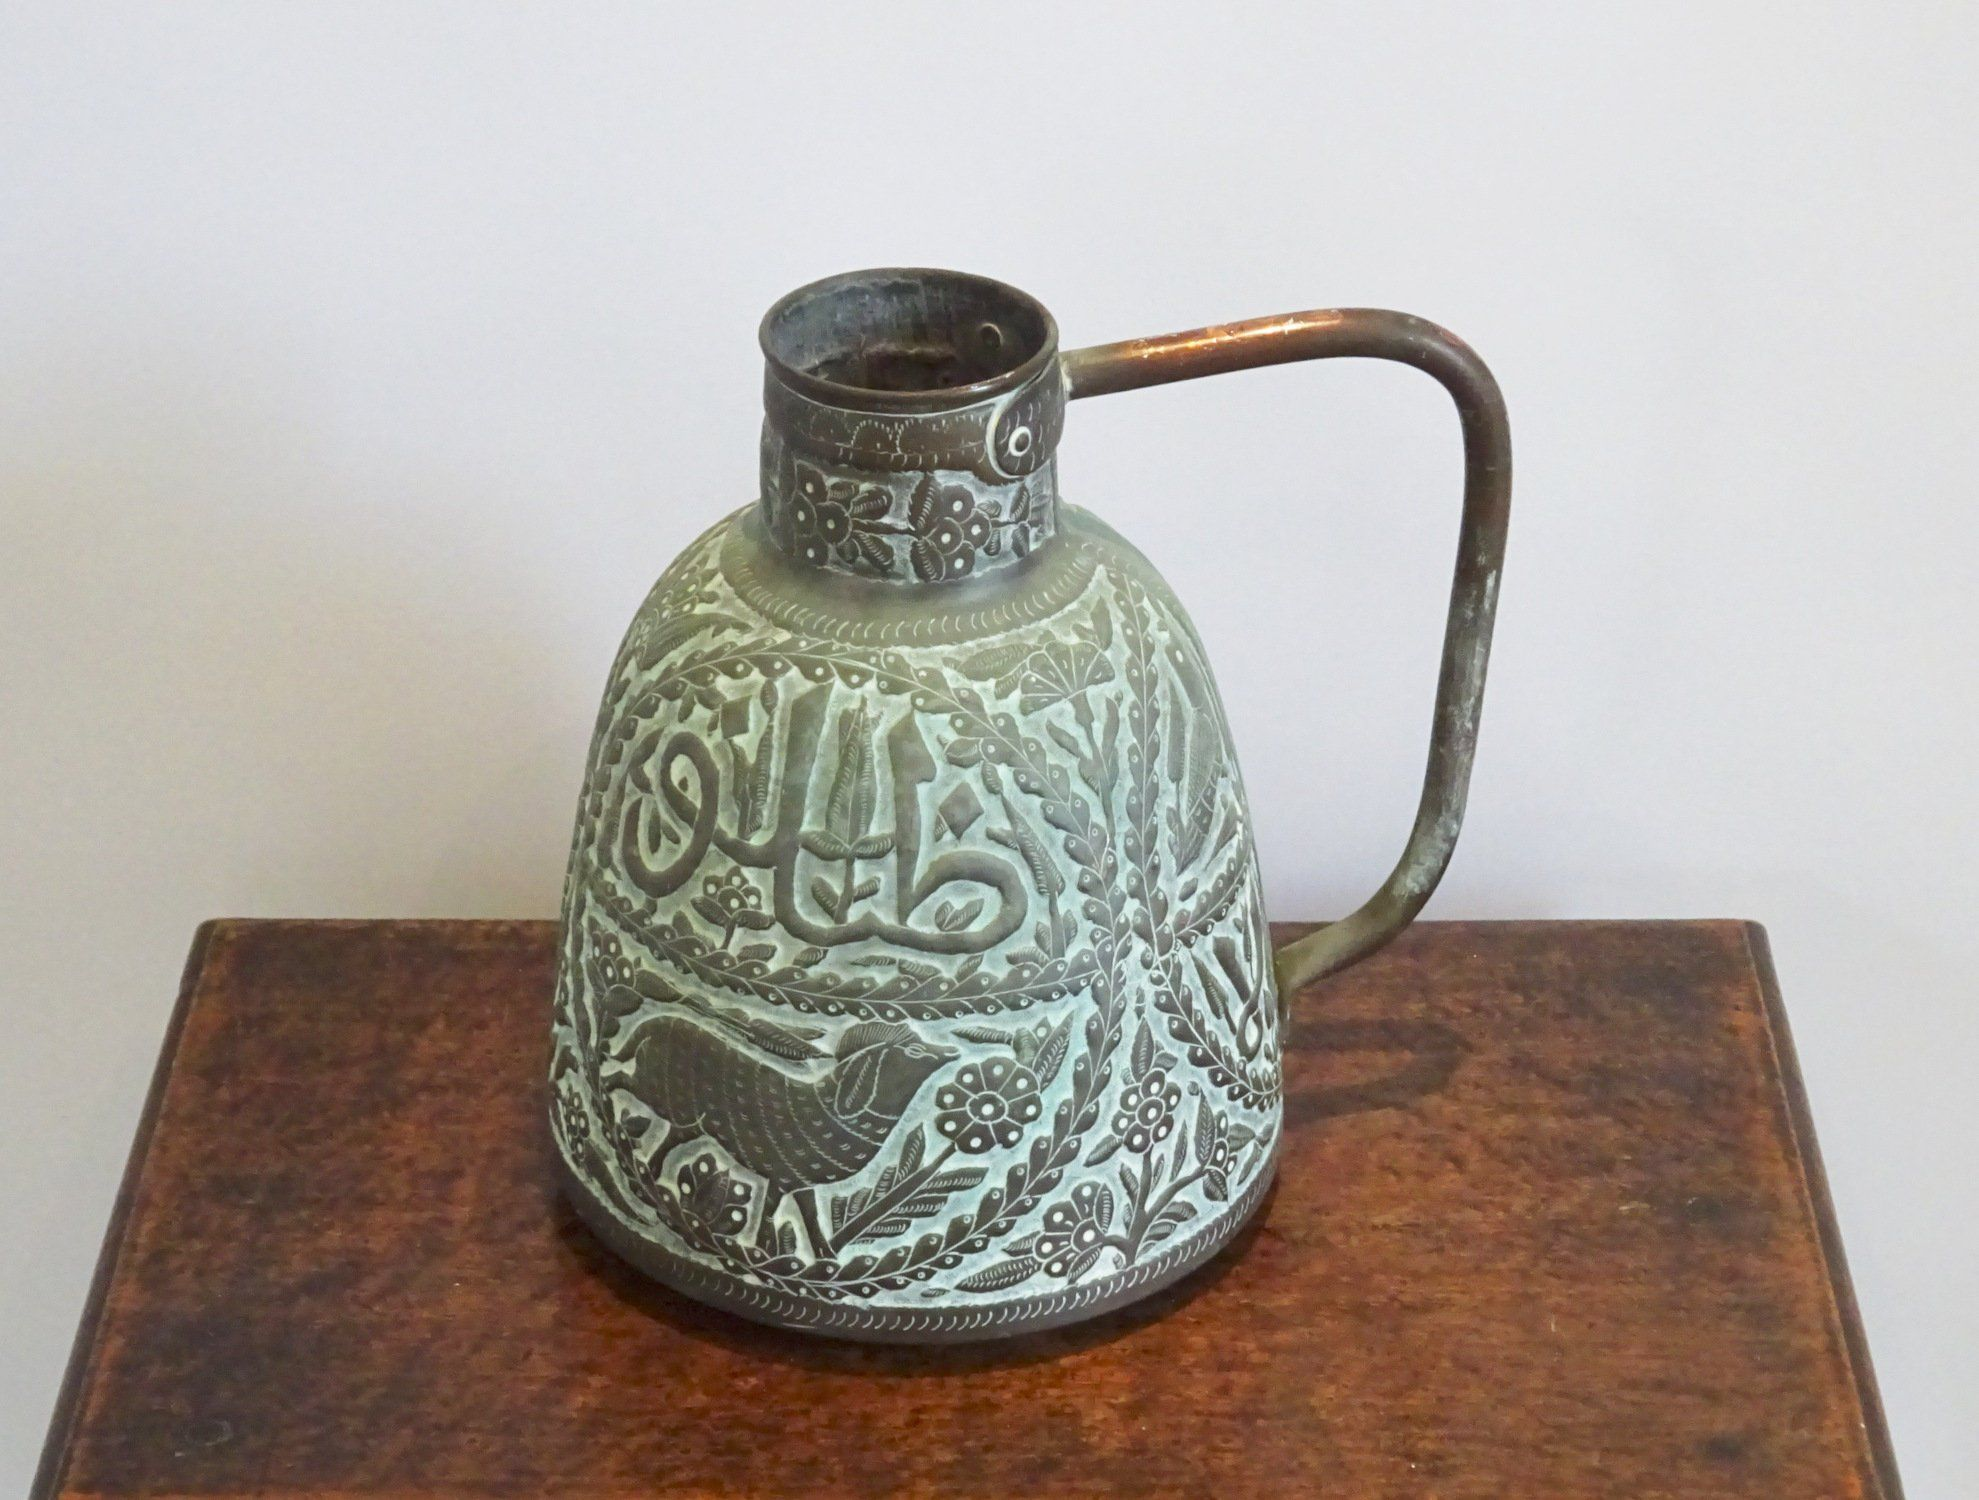 Antique Middle Eastern Arabic copper water jug, Cairoware